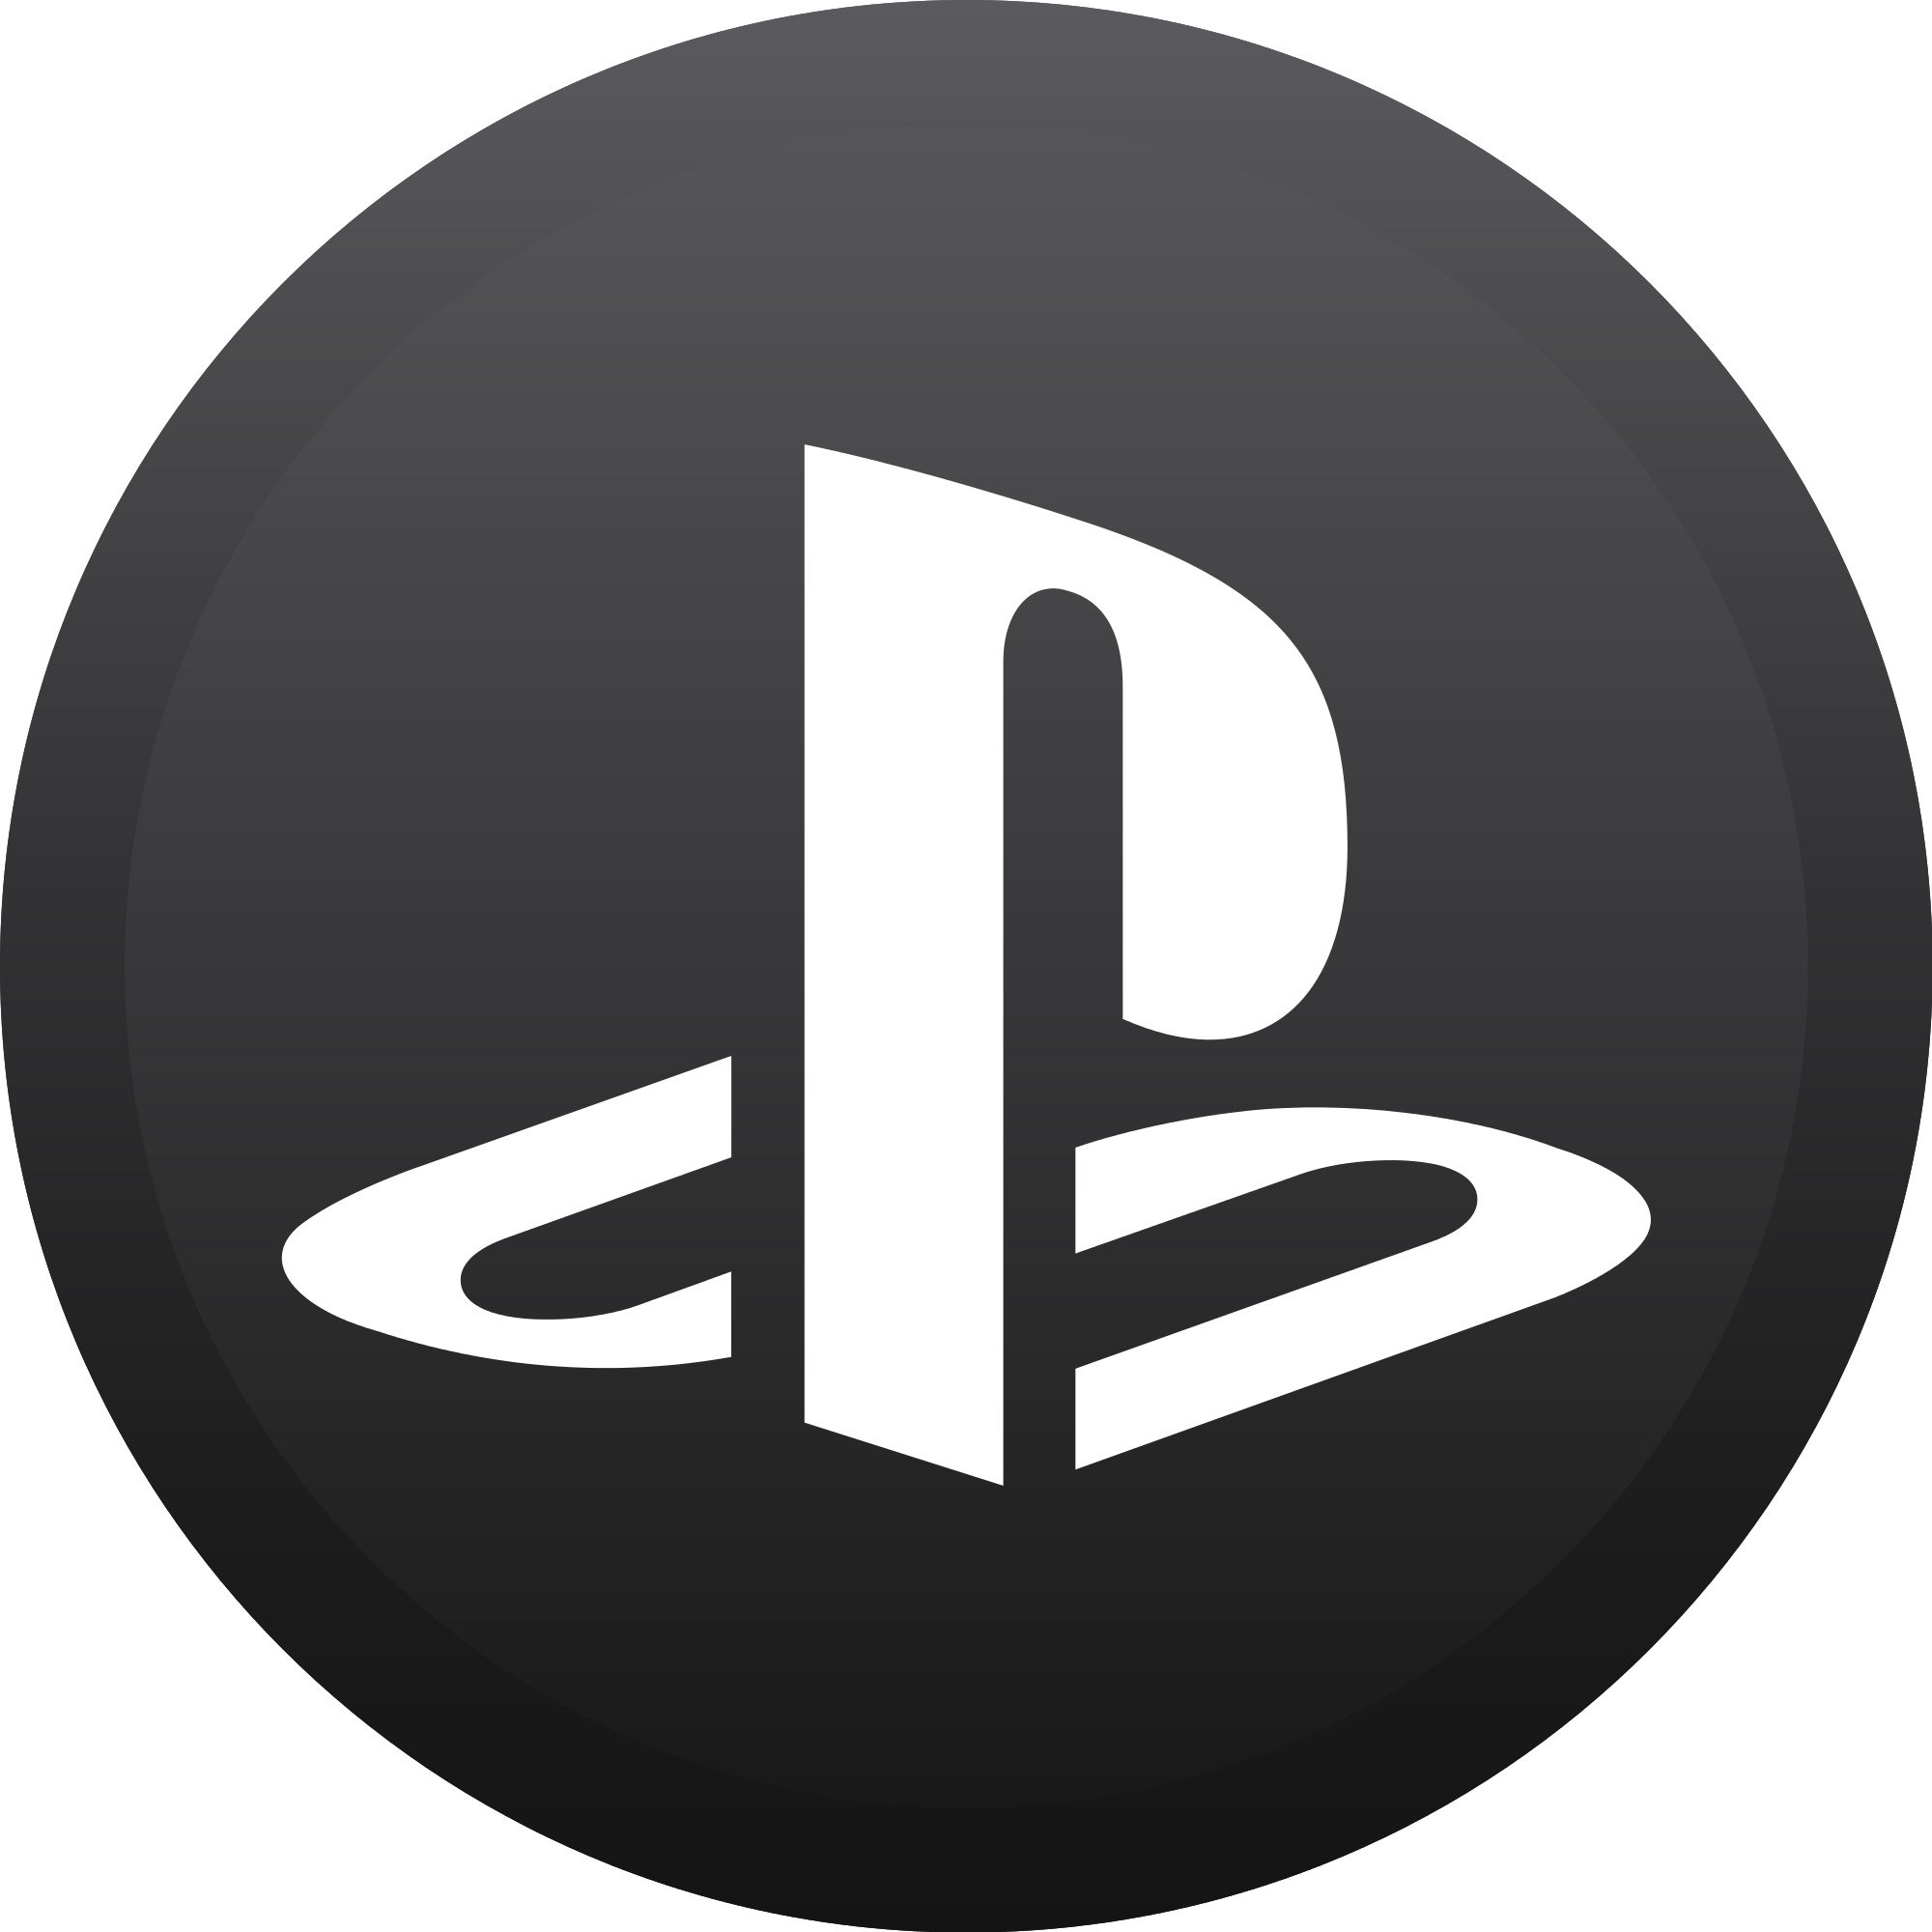 Playstation Buttons Png & Free Playstation Buttons.png ...